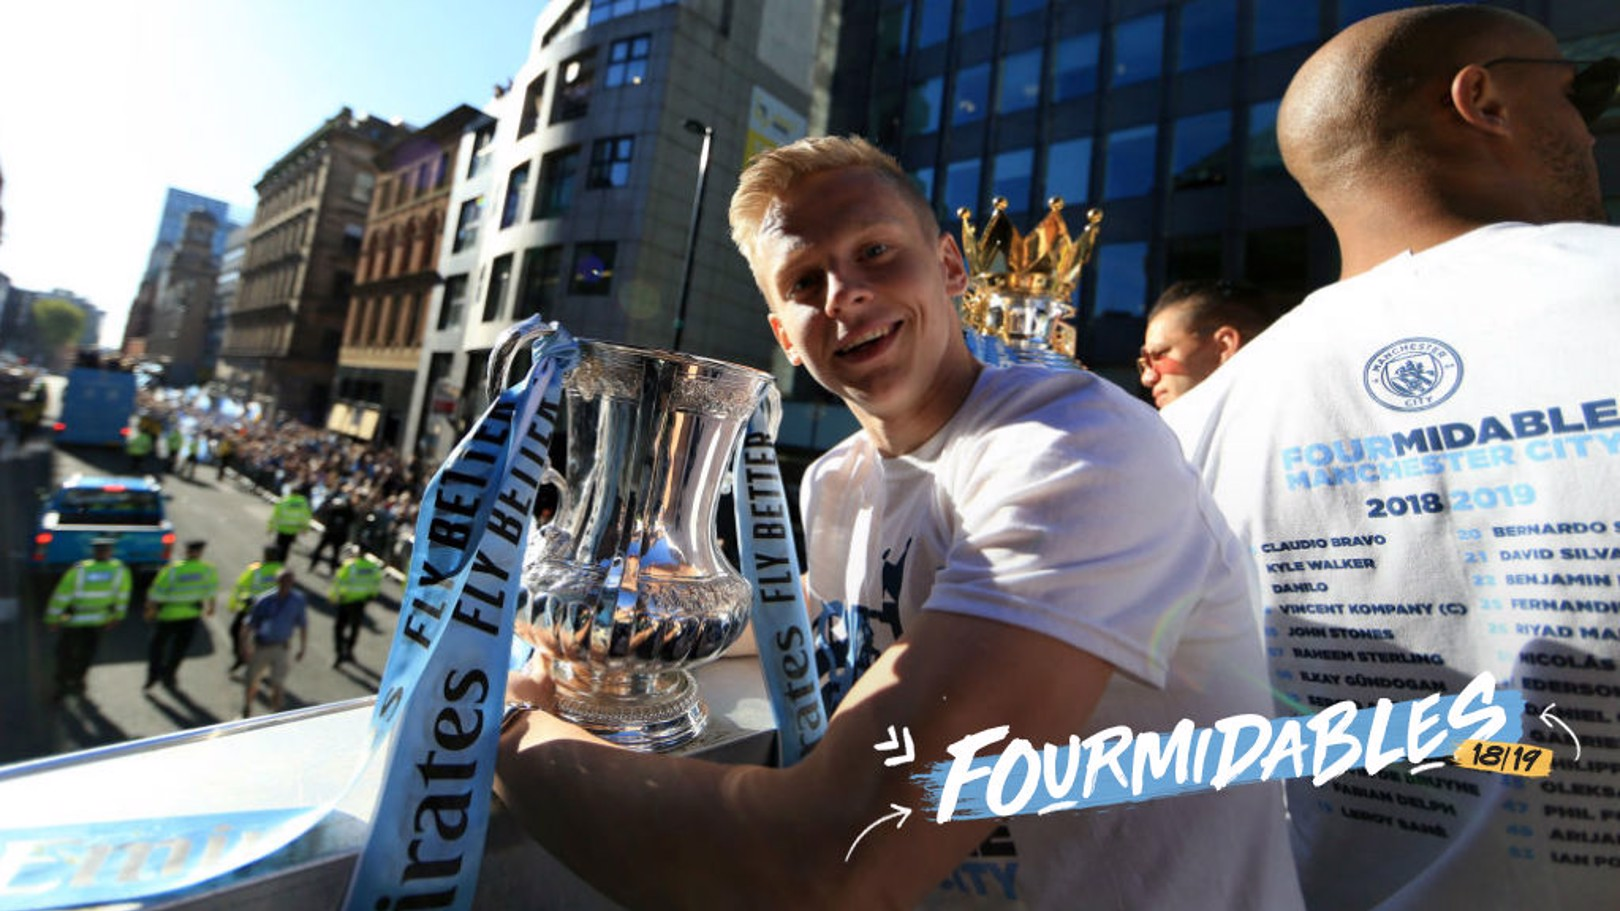 FOURMIDABLES: We take a look back at Zinchenko's fine 2018-19